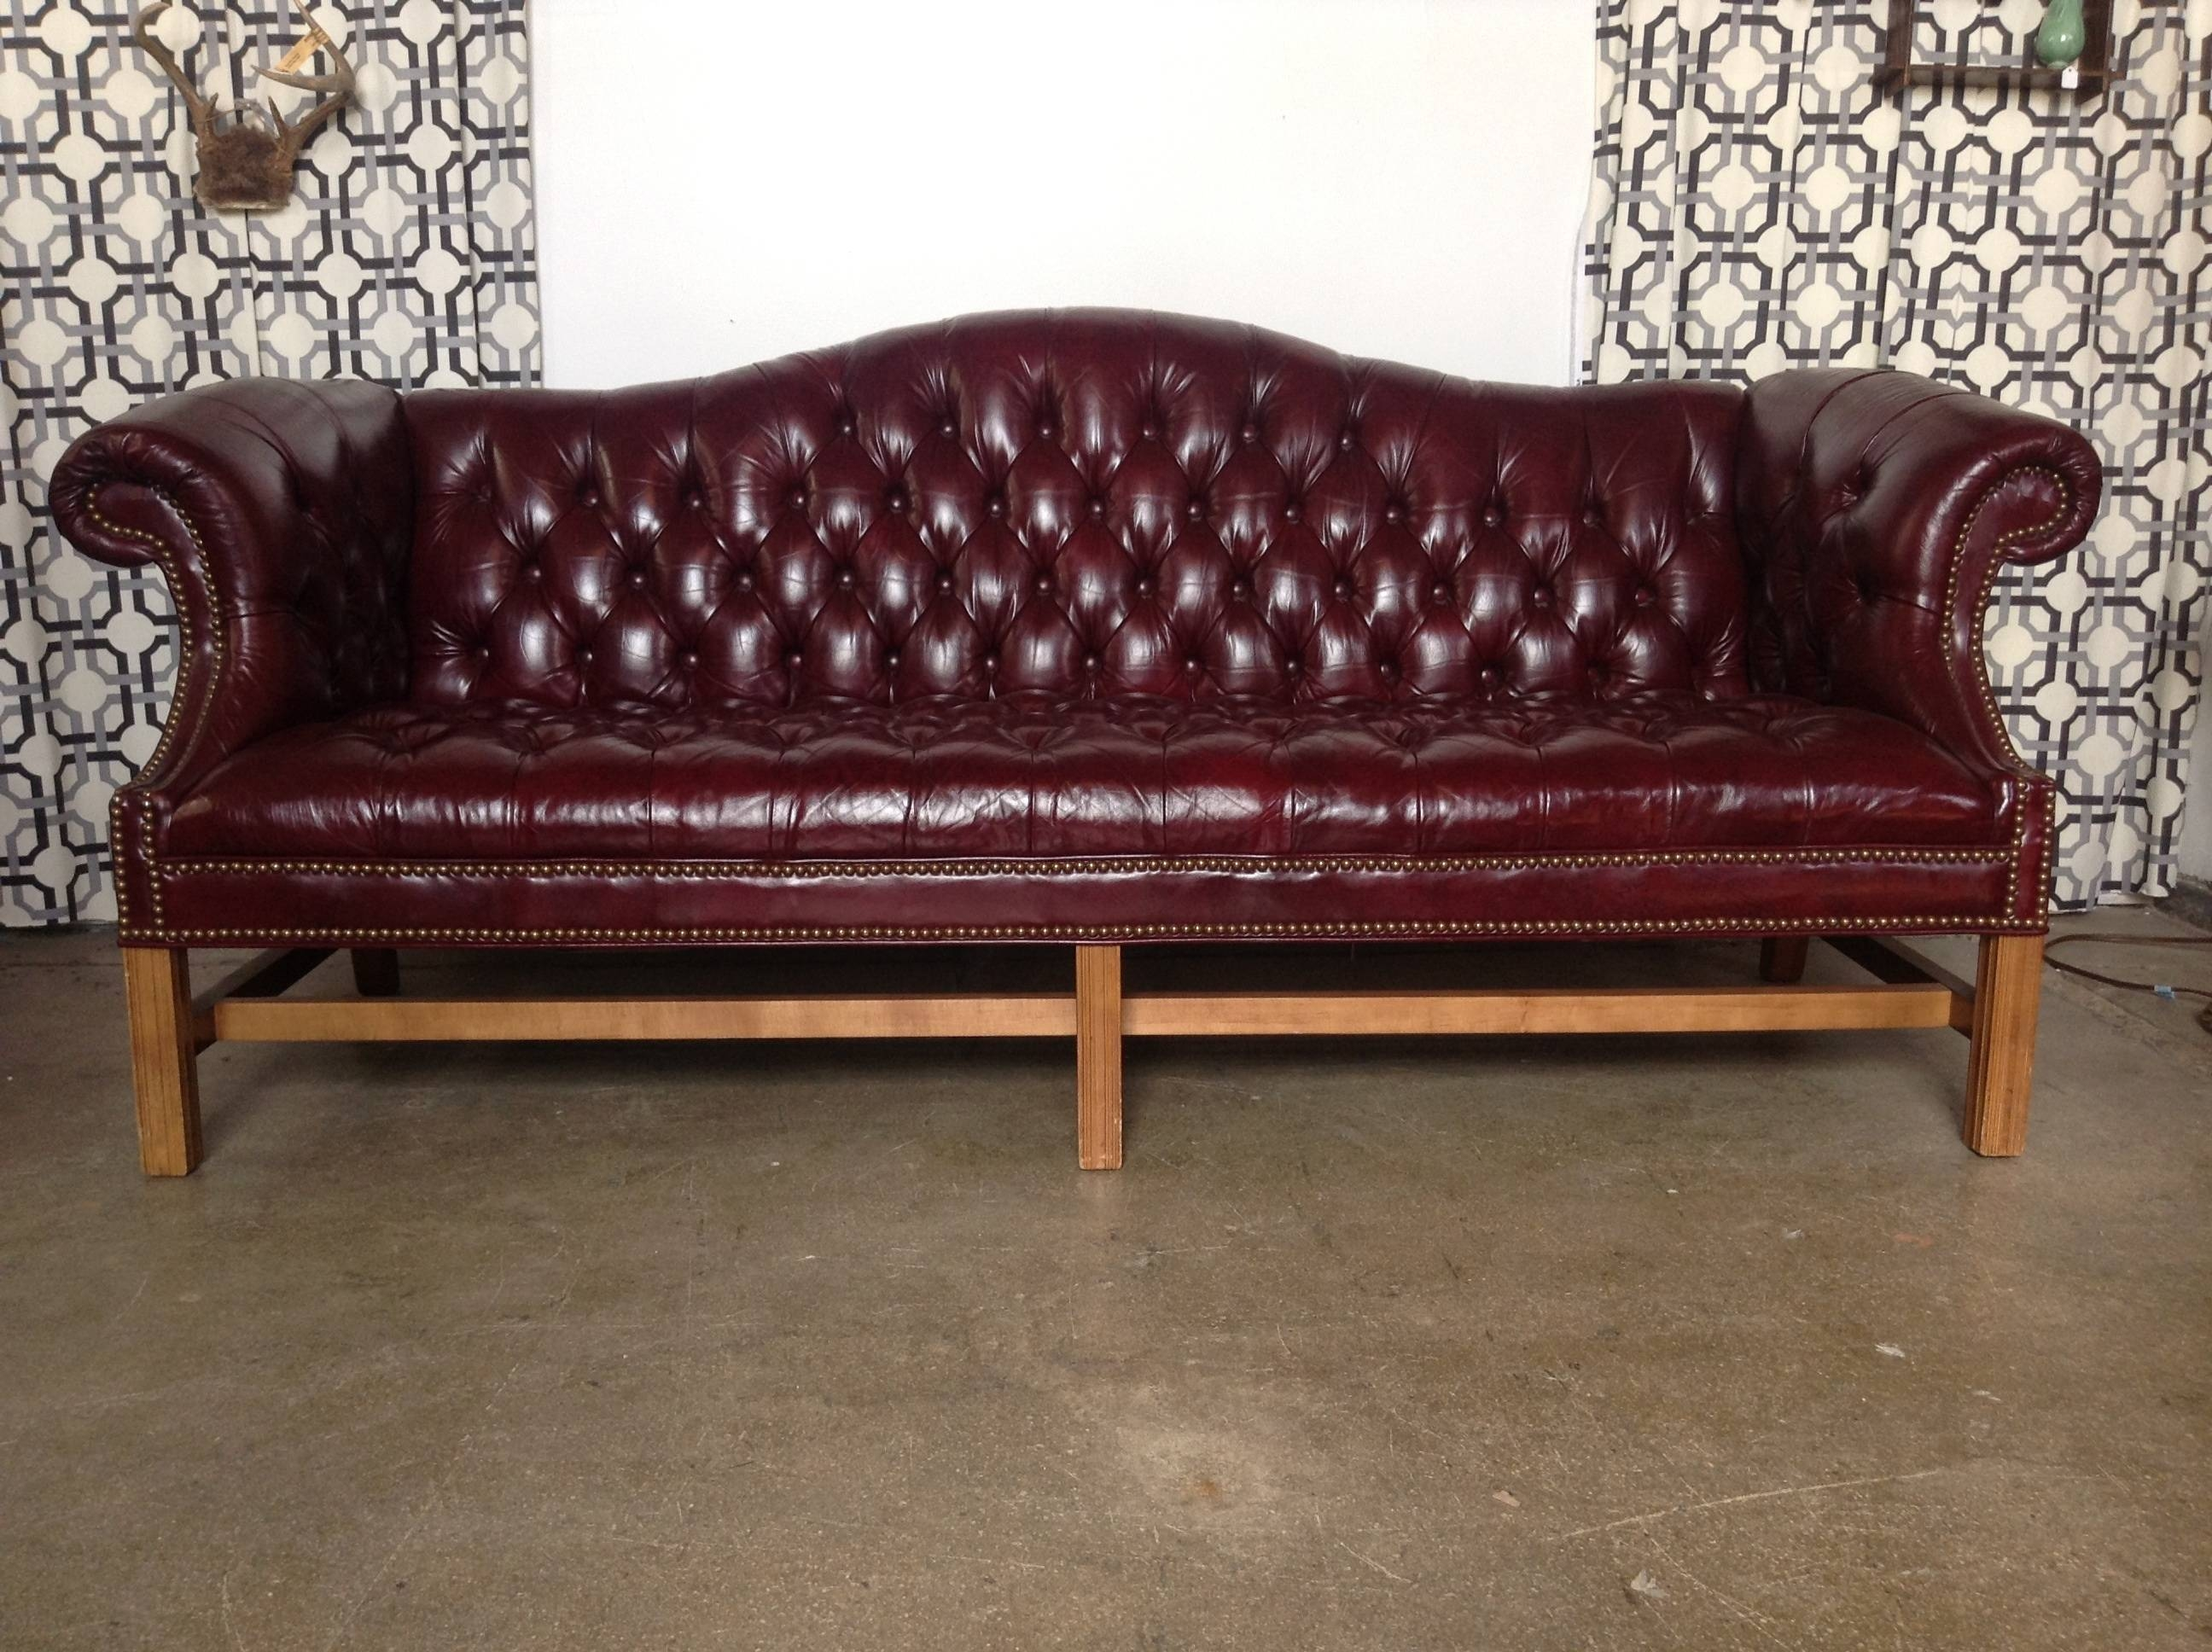 Ideas For Leather Tufted Sofa Design #9307 throughout Camelback Leather Sofas (Image 5 of 15)